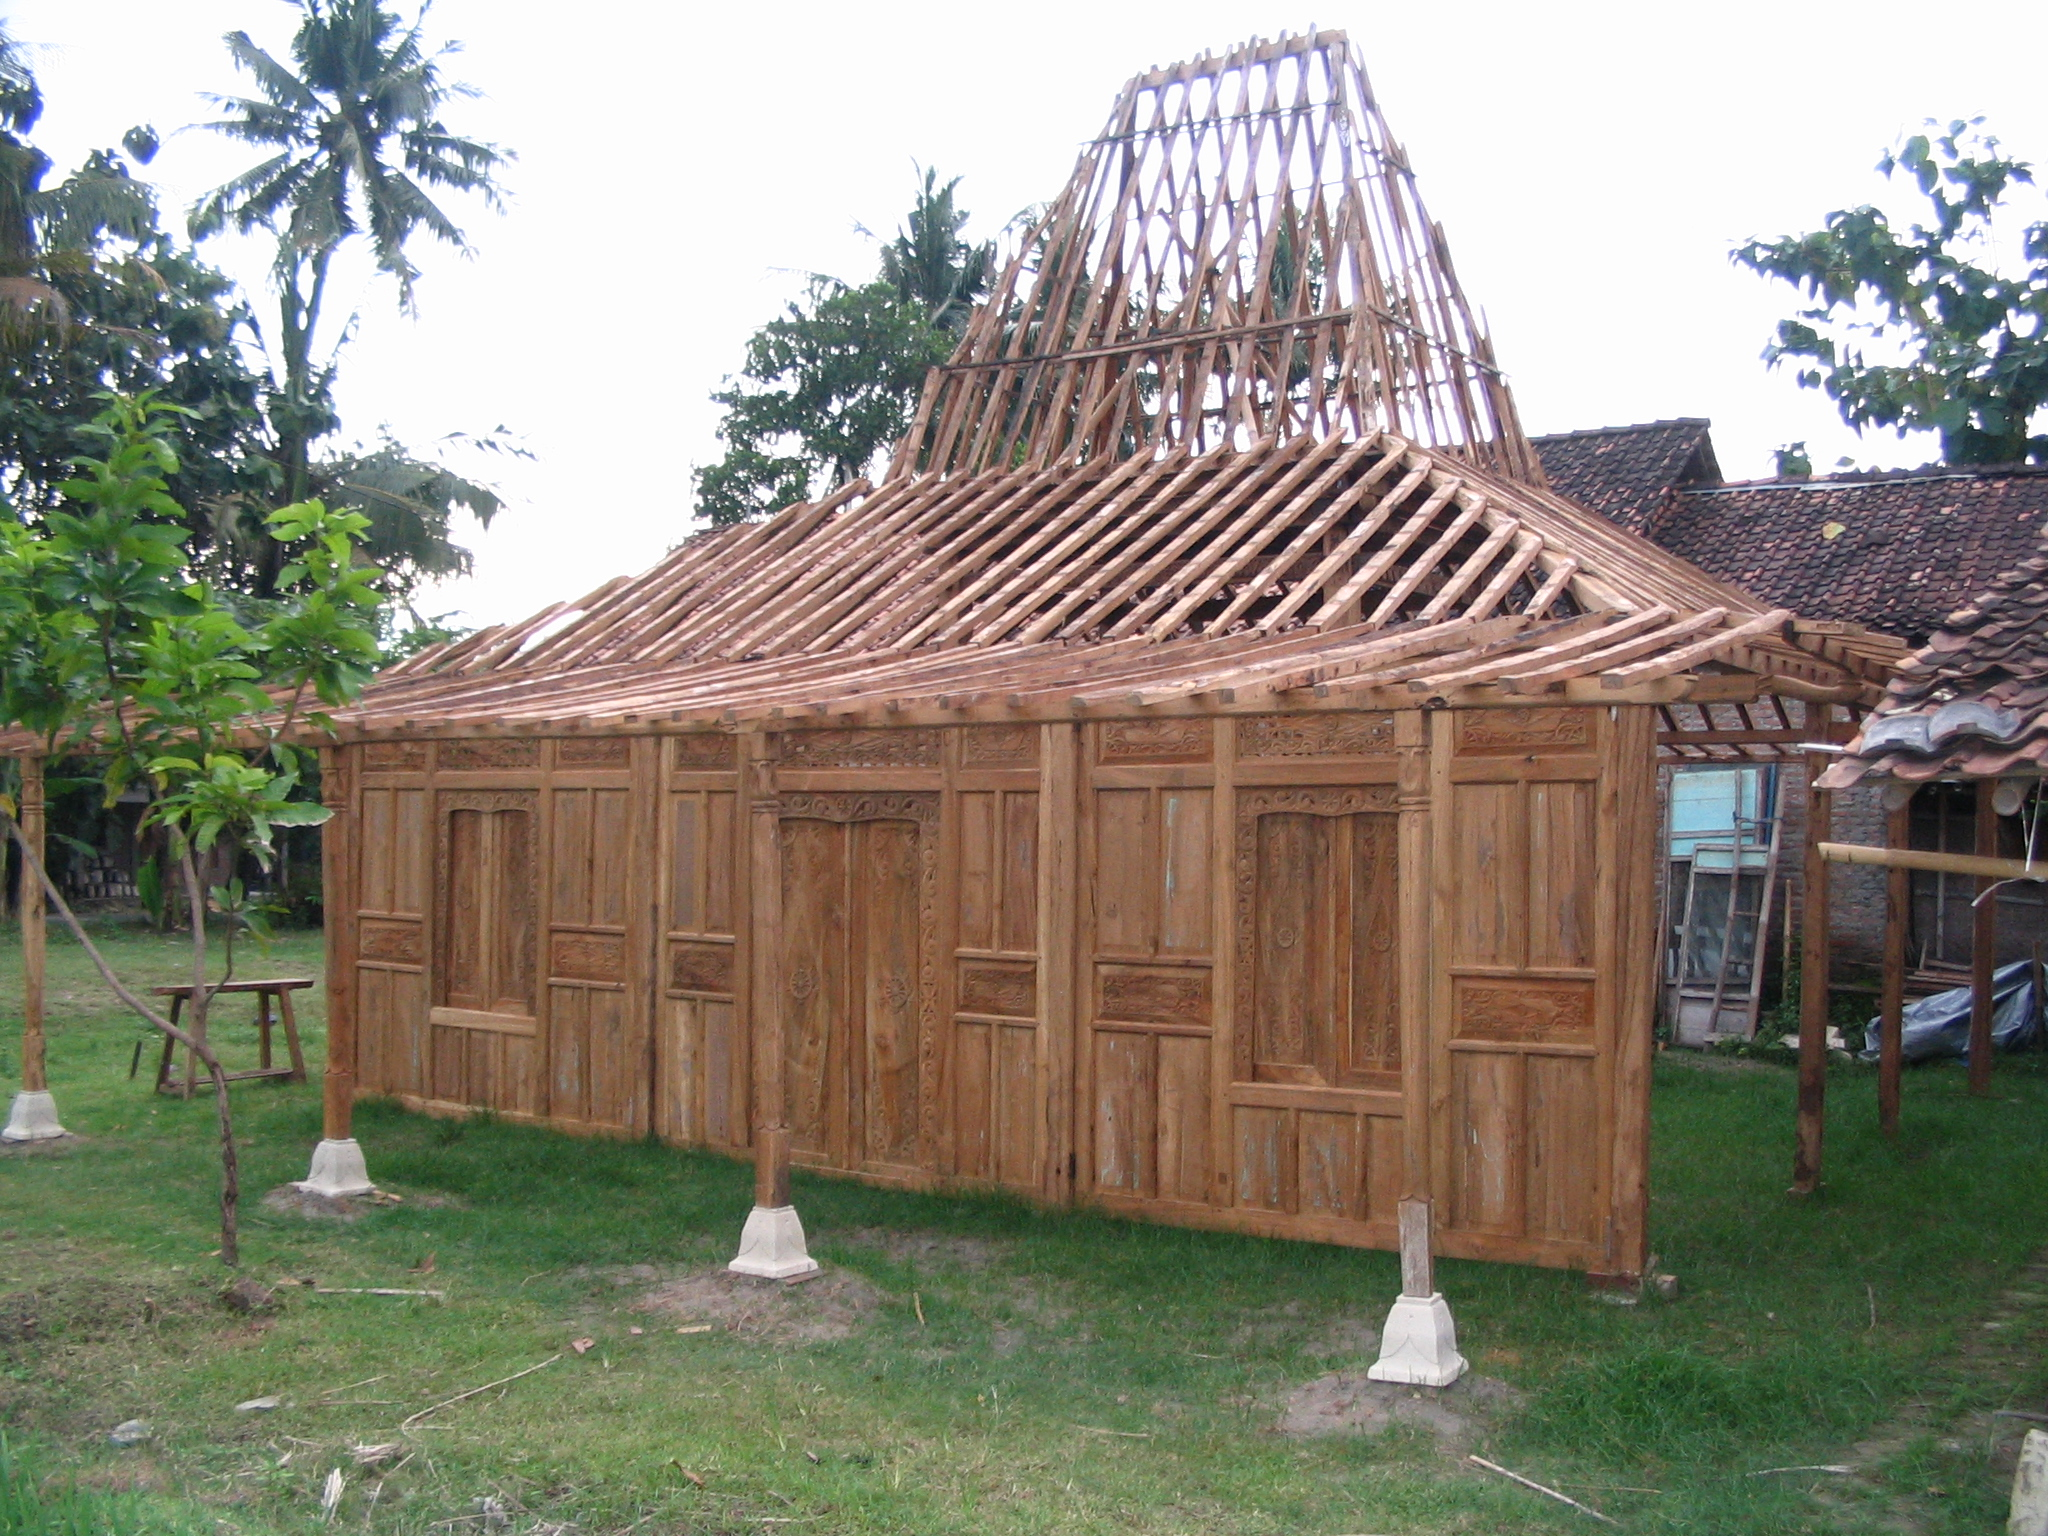 Rumah Pendopo Gallery All About Joglo Rumah Pendopo All About